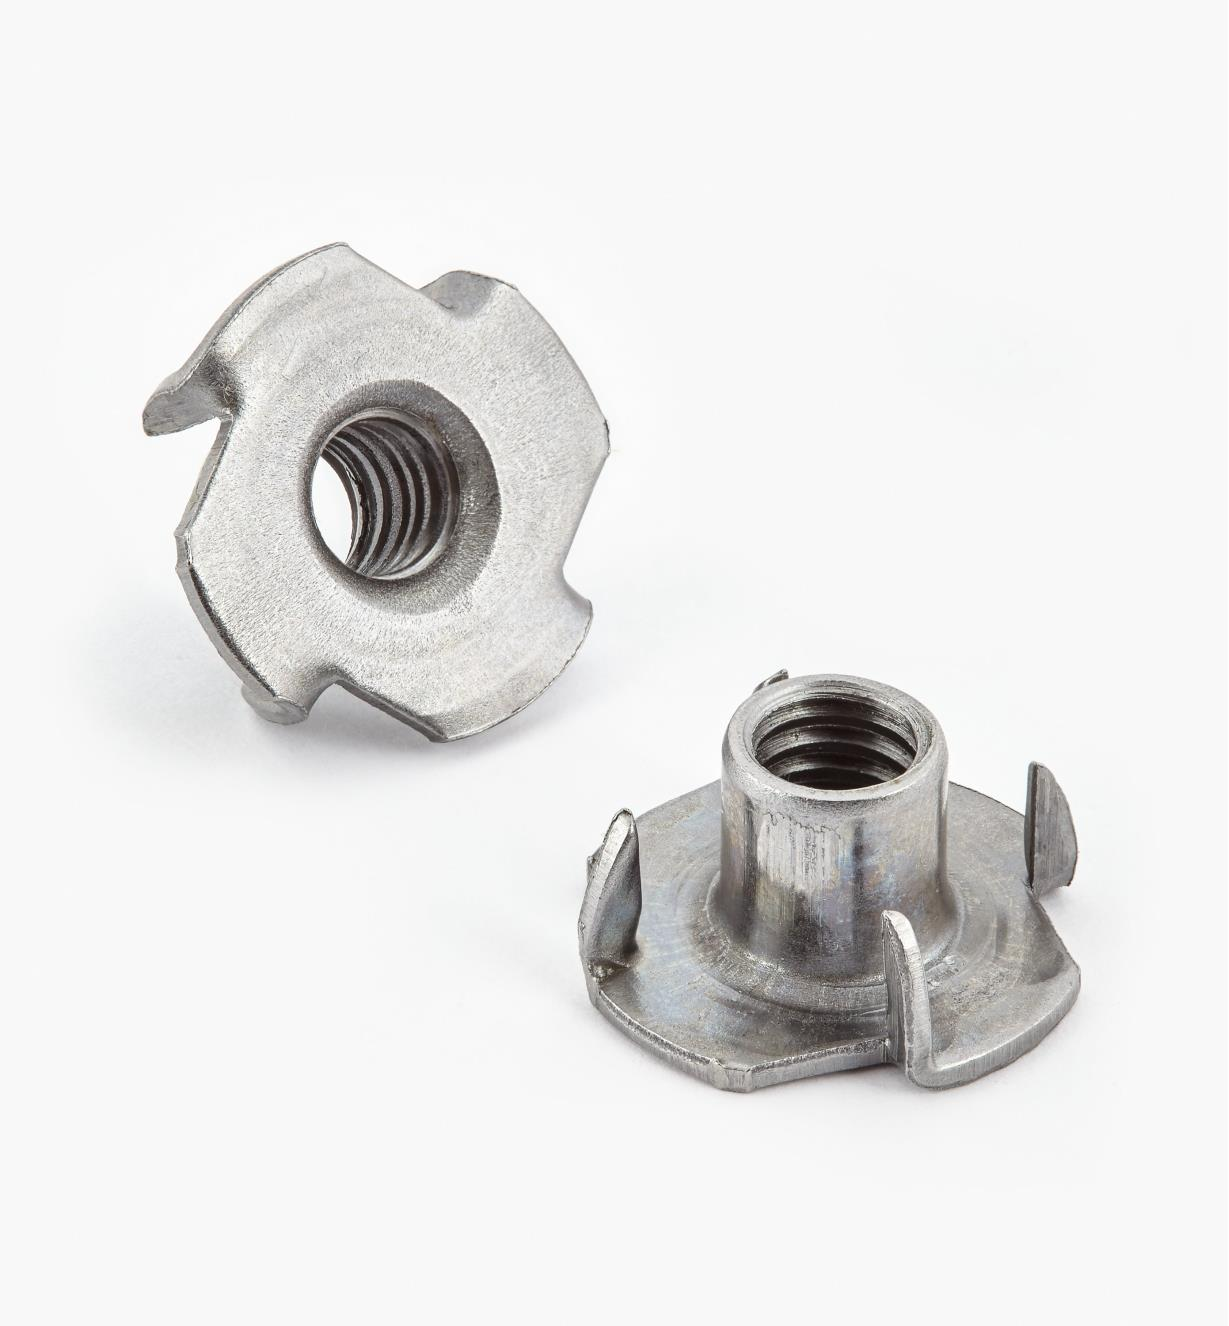 00N5204 - 4-Prong T-Nuts, pkg. of 10